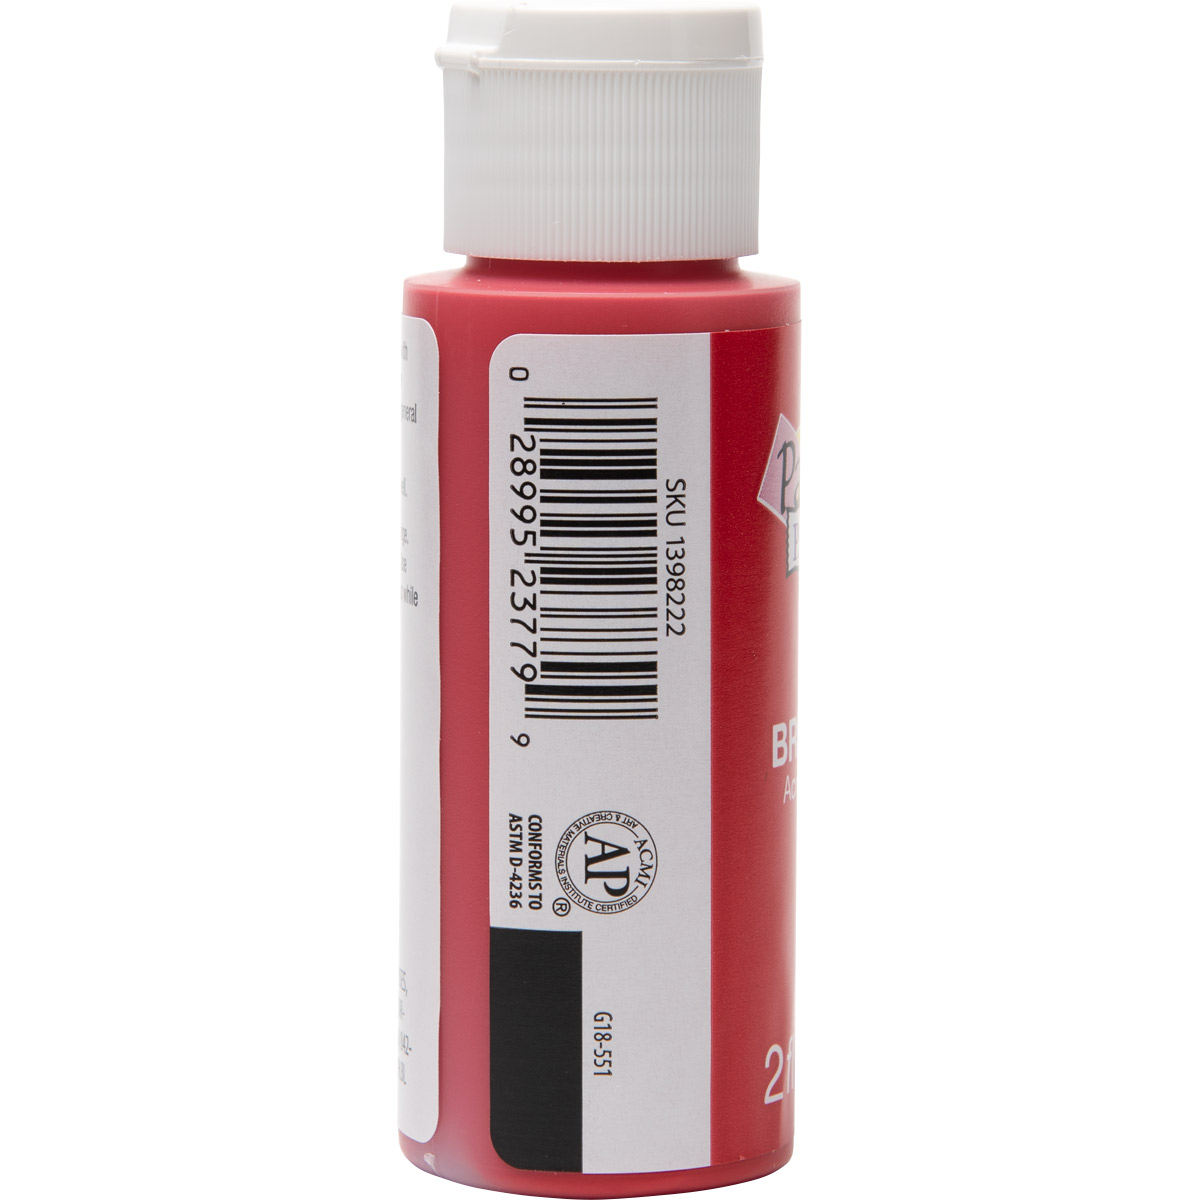 Plaid ® Painter's Palette™ Acrylic Paint - Bright Red, 2 oz. - 23779